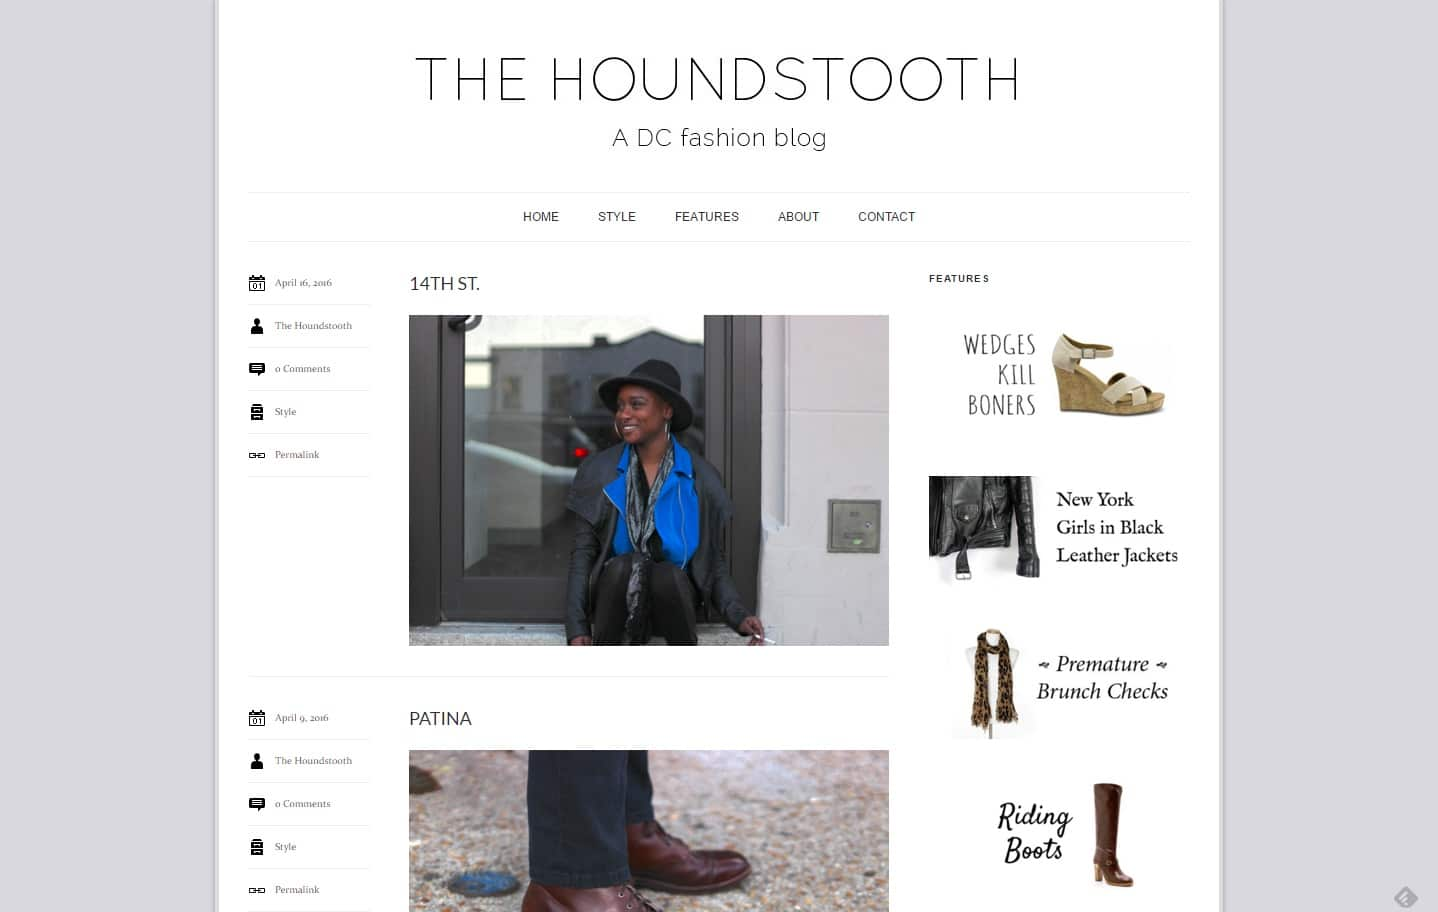 the houndstooth street style blog